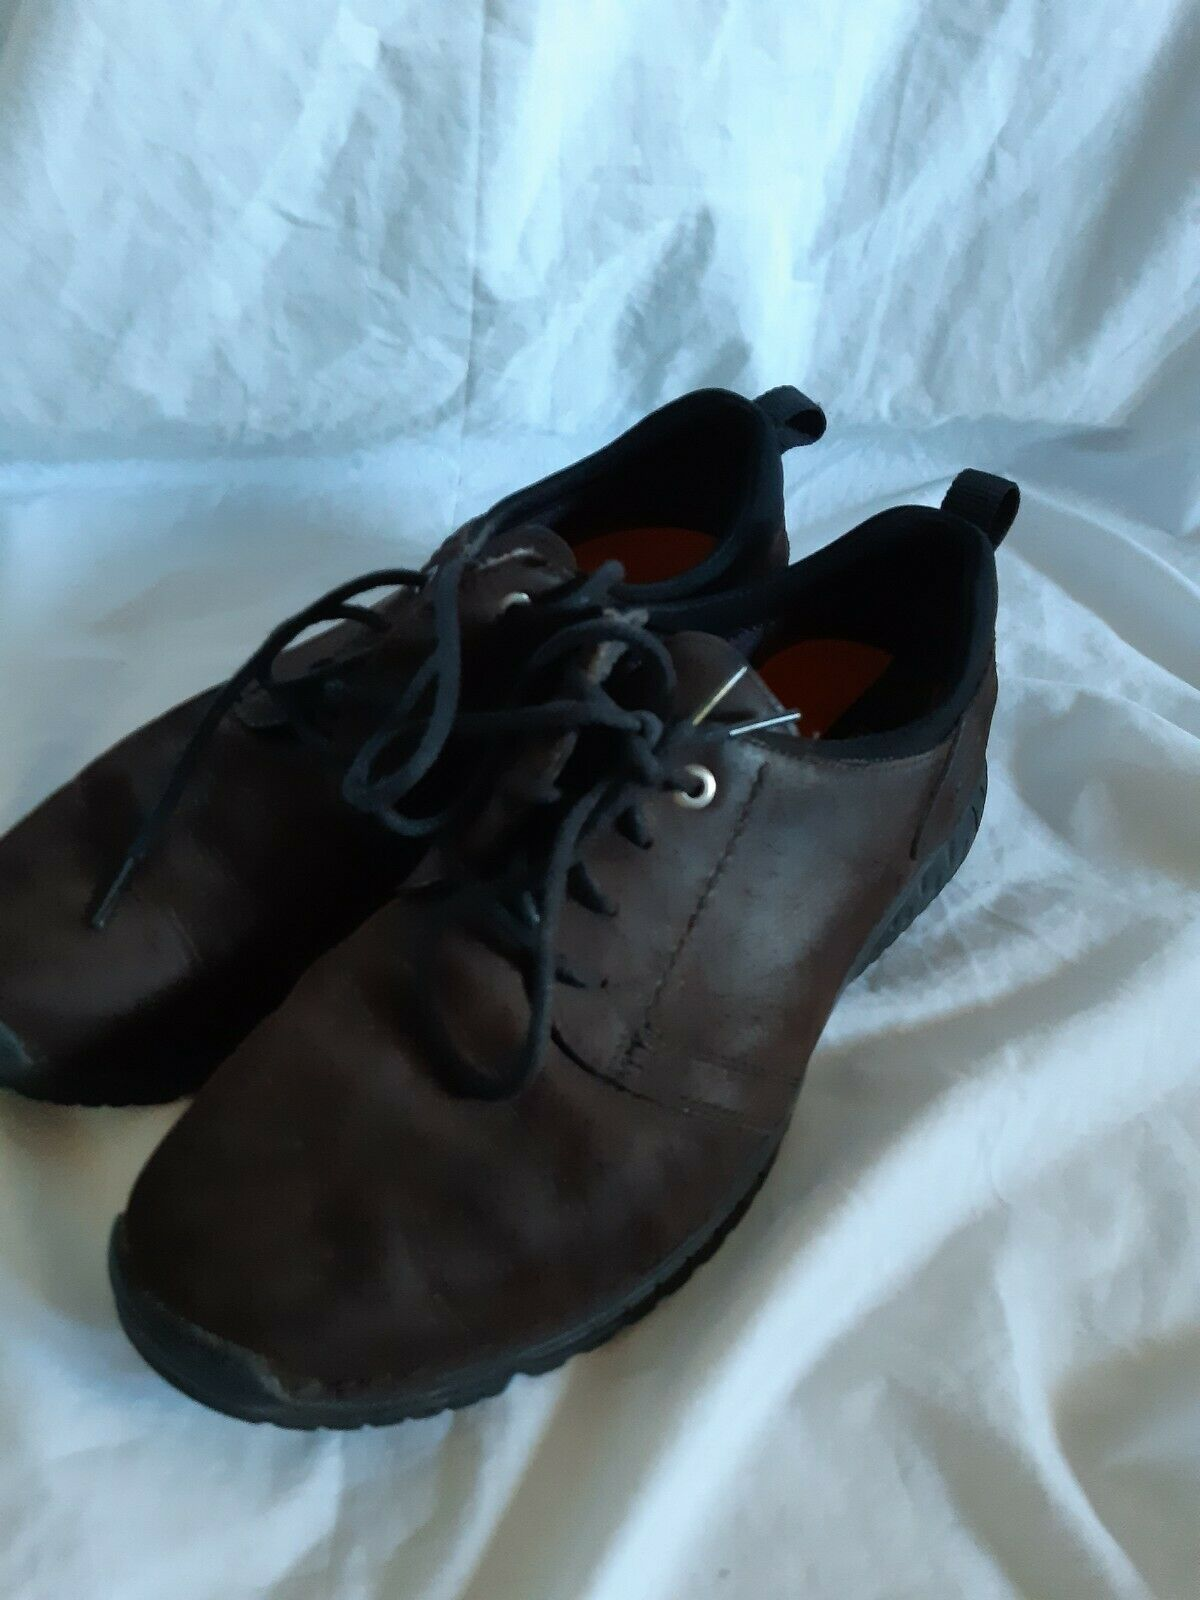 Timberland mens brown suede leather shoes size US 9W